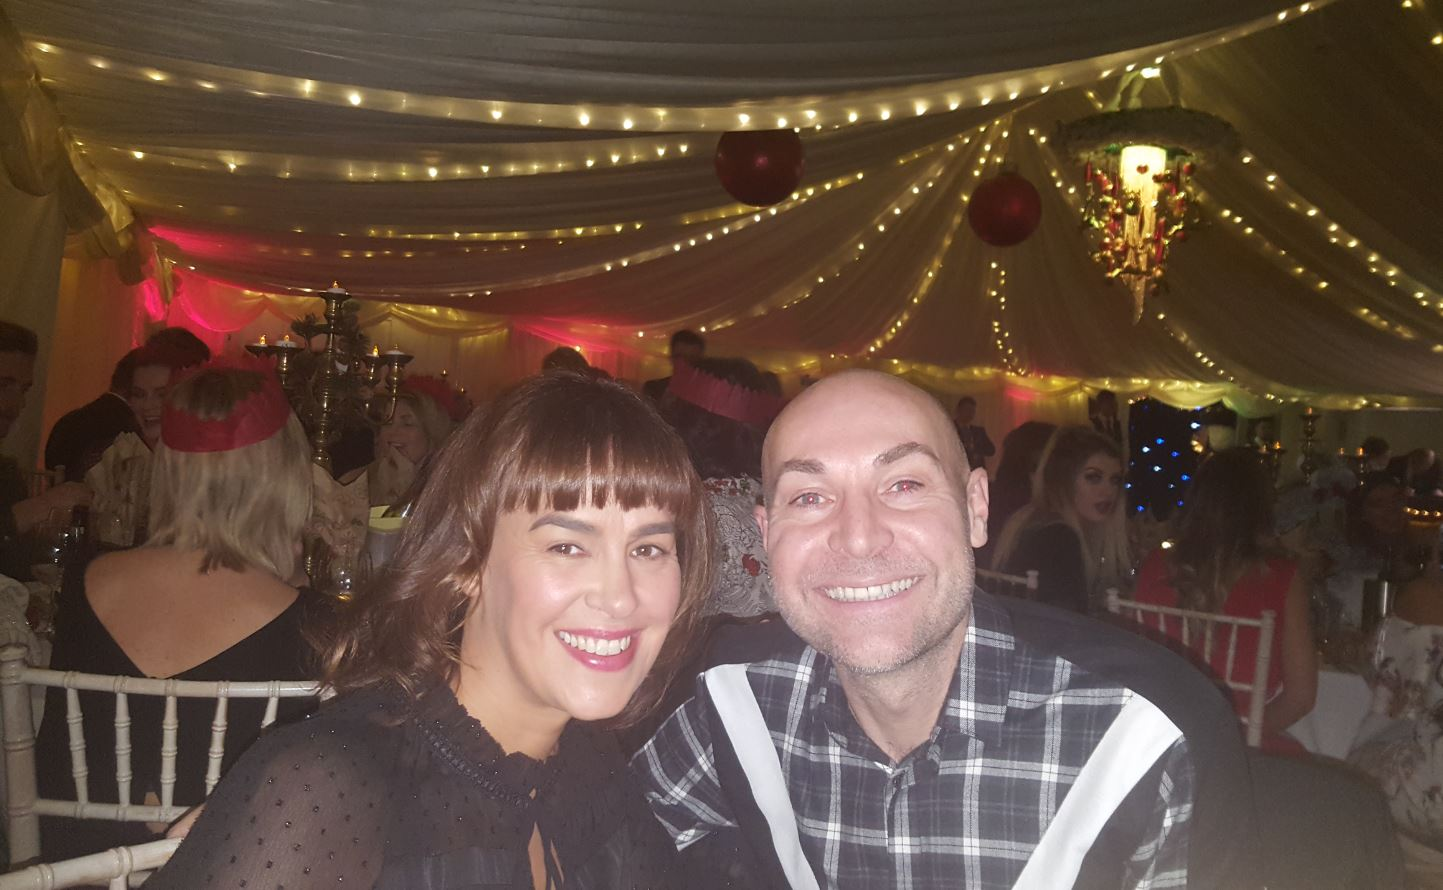 Philip Barker (Sales Director) with Vicky Barker (his wife)